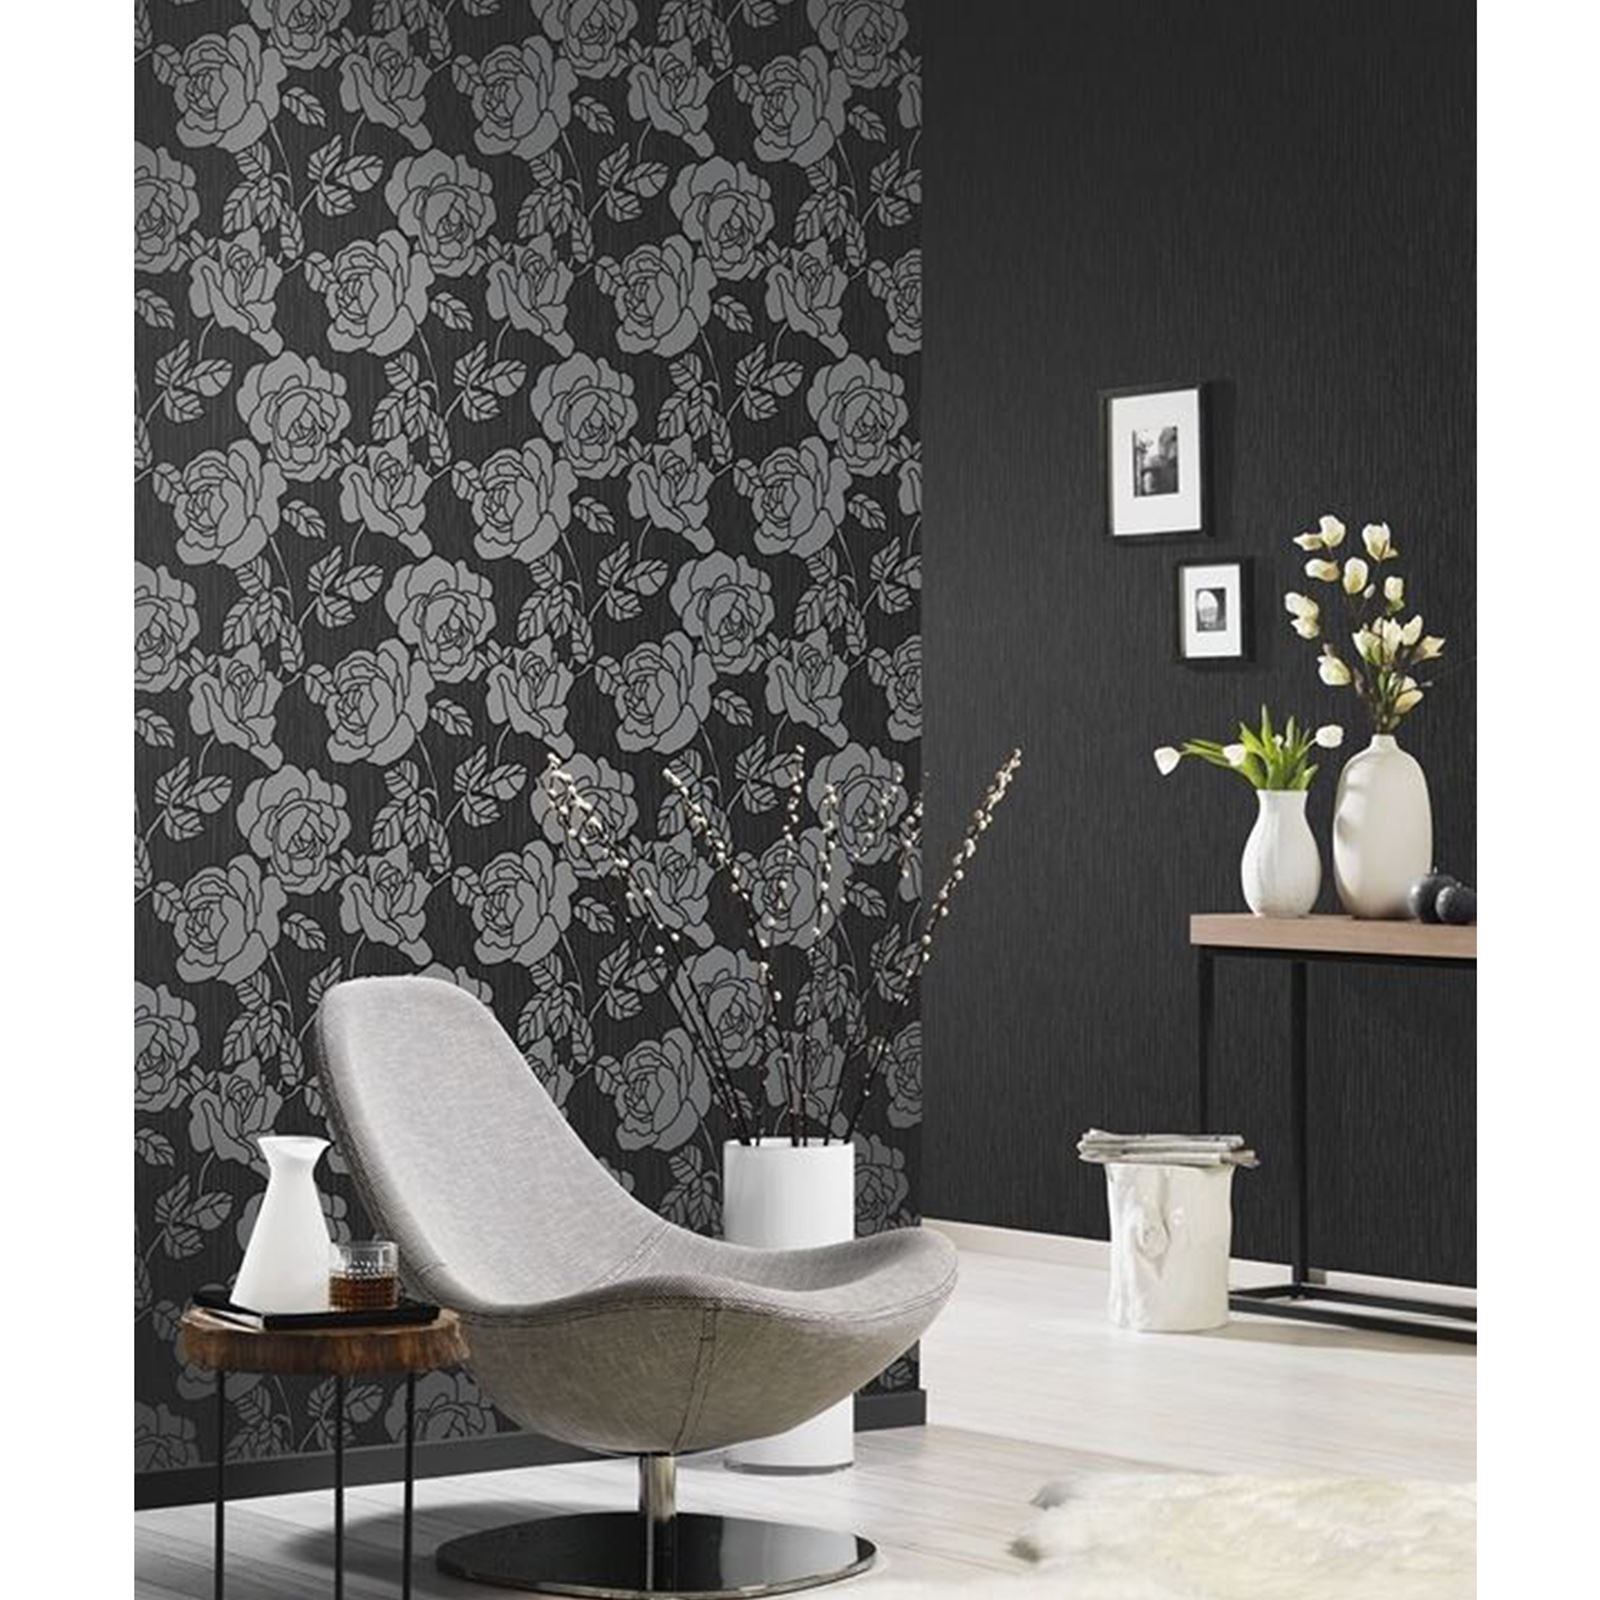 P S Opal Floral Wallpaper With Glitter Highlights Black Grey Cream